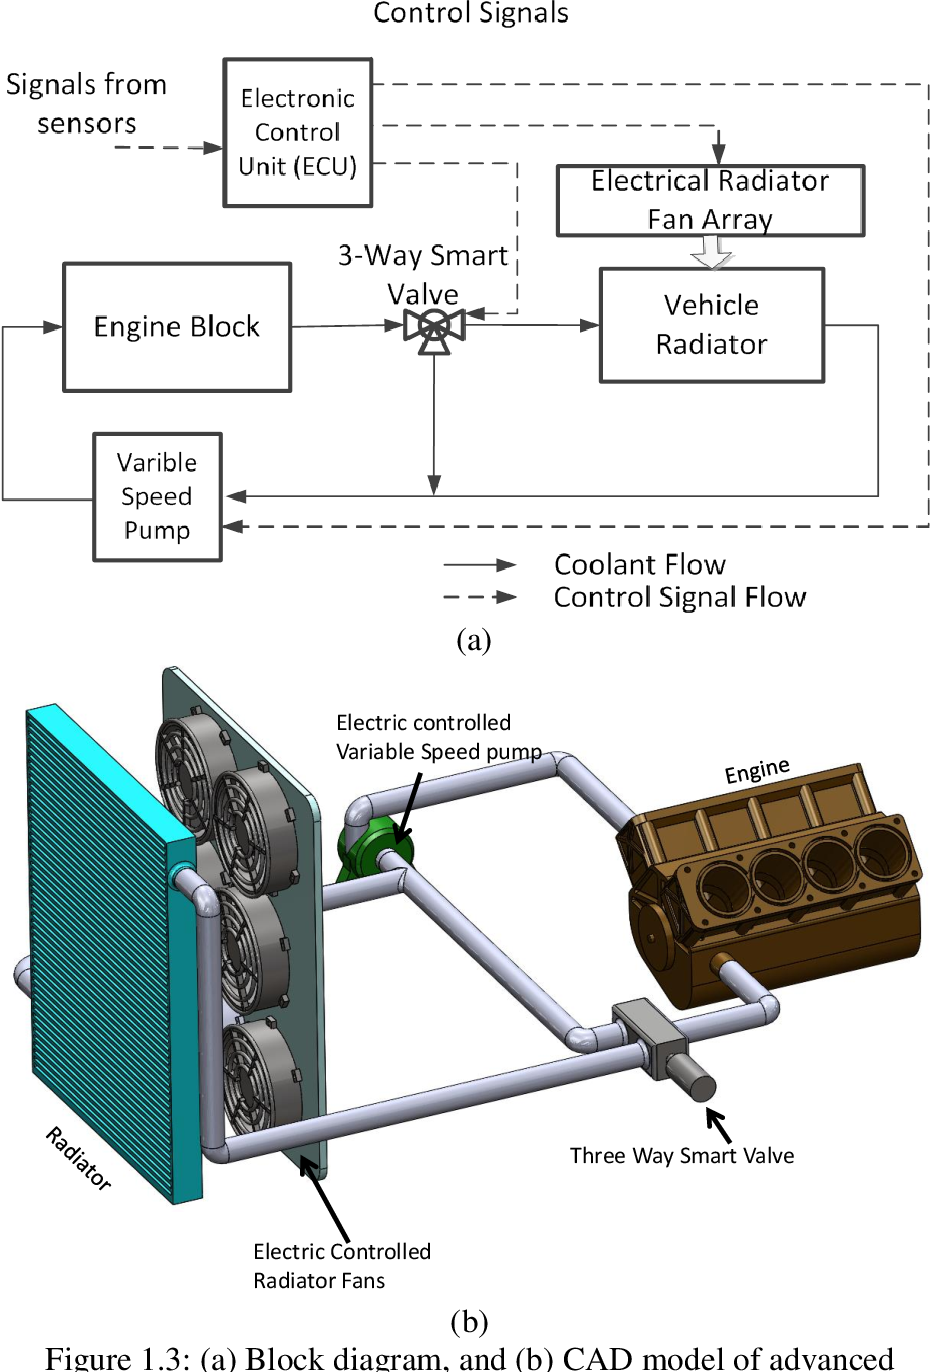 Investigation of Advanced Engine Cooling Systems - Optimization and  Nonlinear Control | Semantic ScholarSemantic Scholar